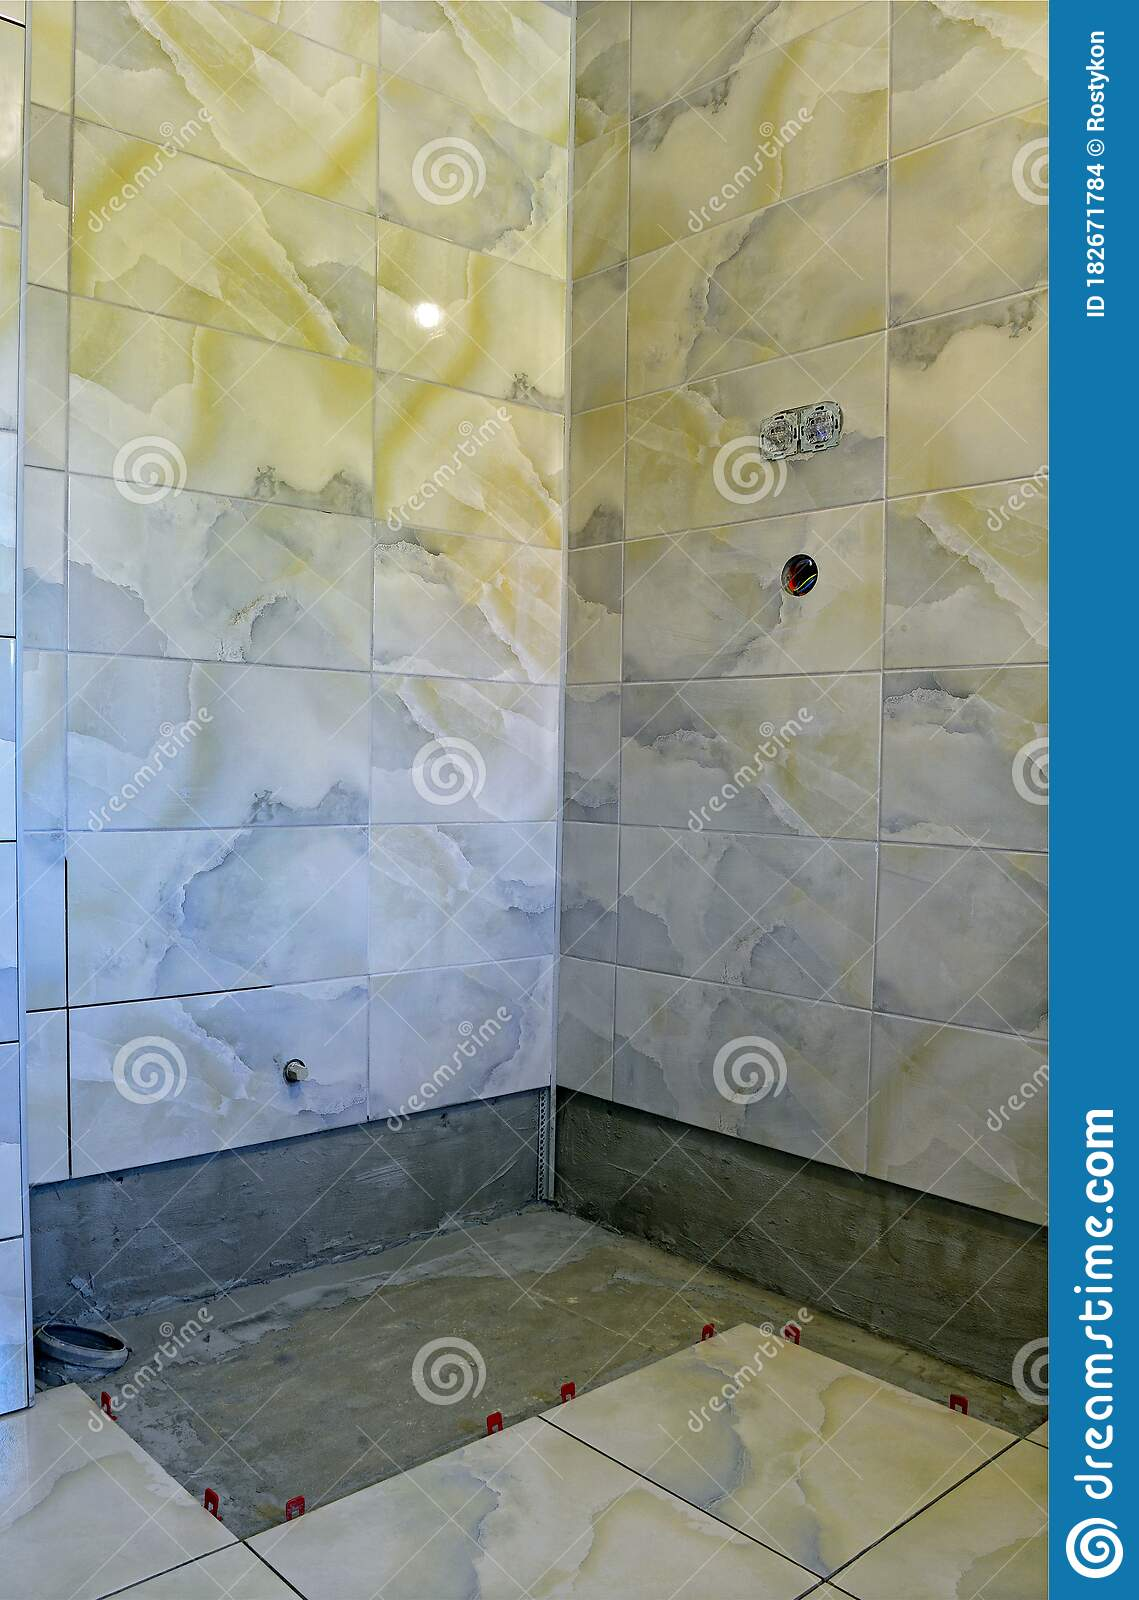 fastening of a ceramic tile to walls and a floor stock photo image of perpendicular background 182671784